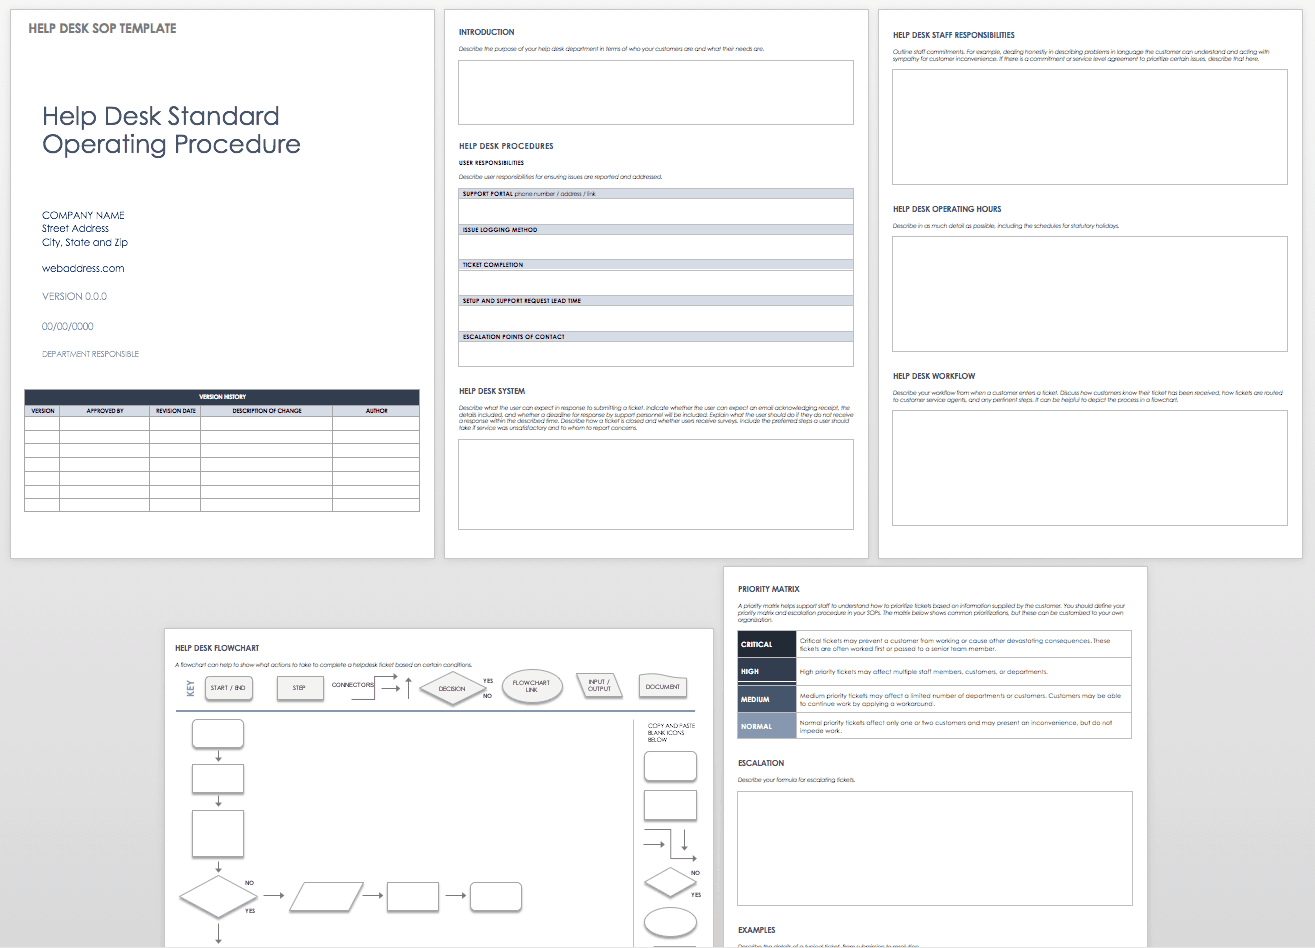 Standard operating procedures templates smartsheet help desk standard operating procedure template maxwellsz